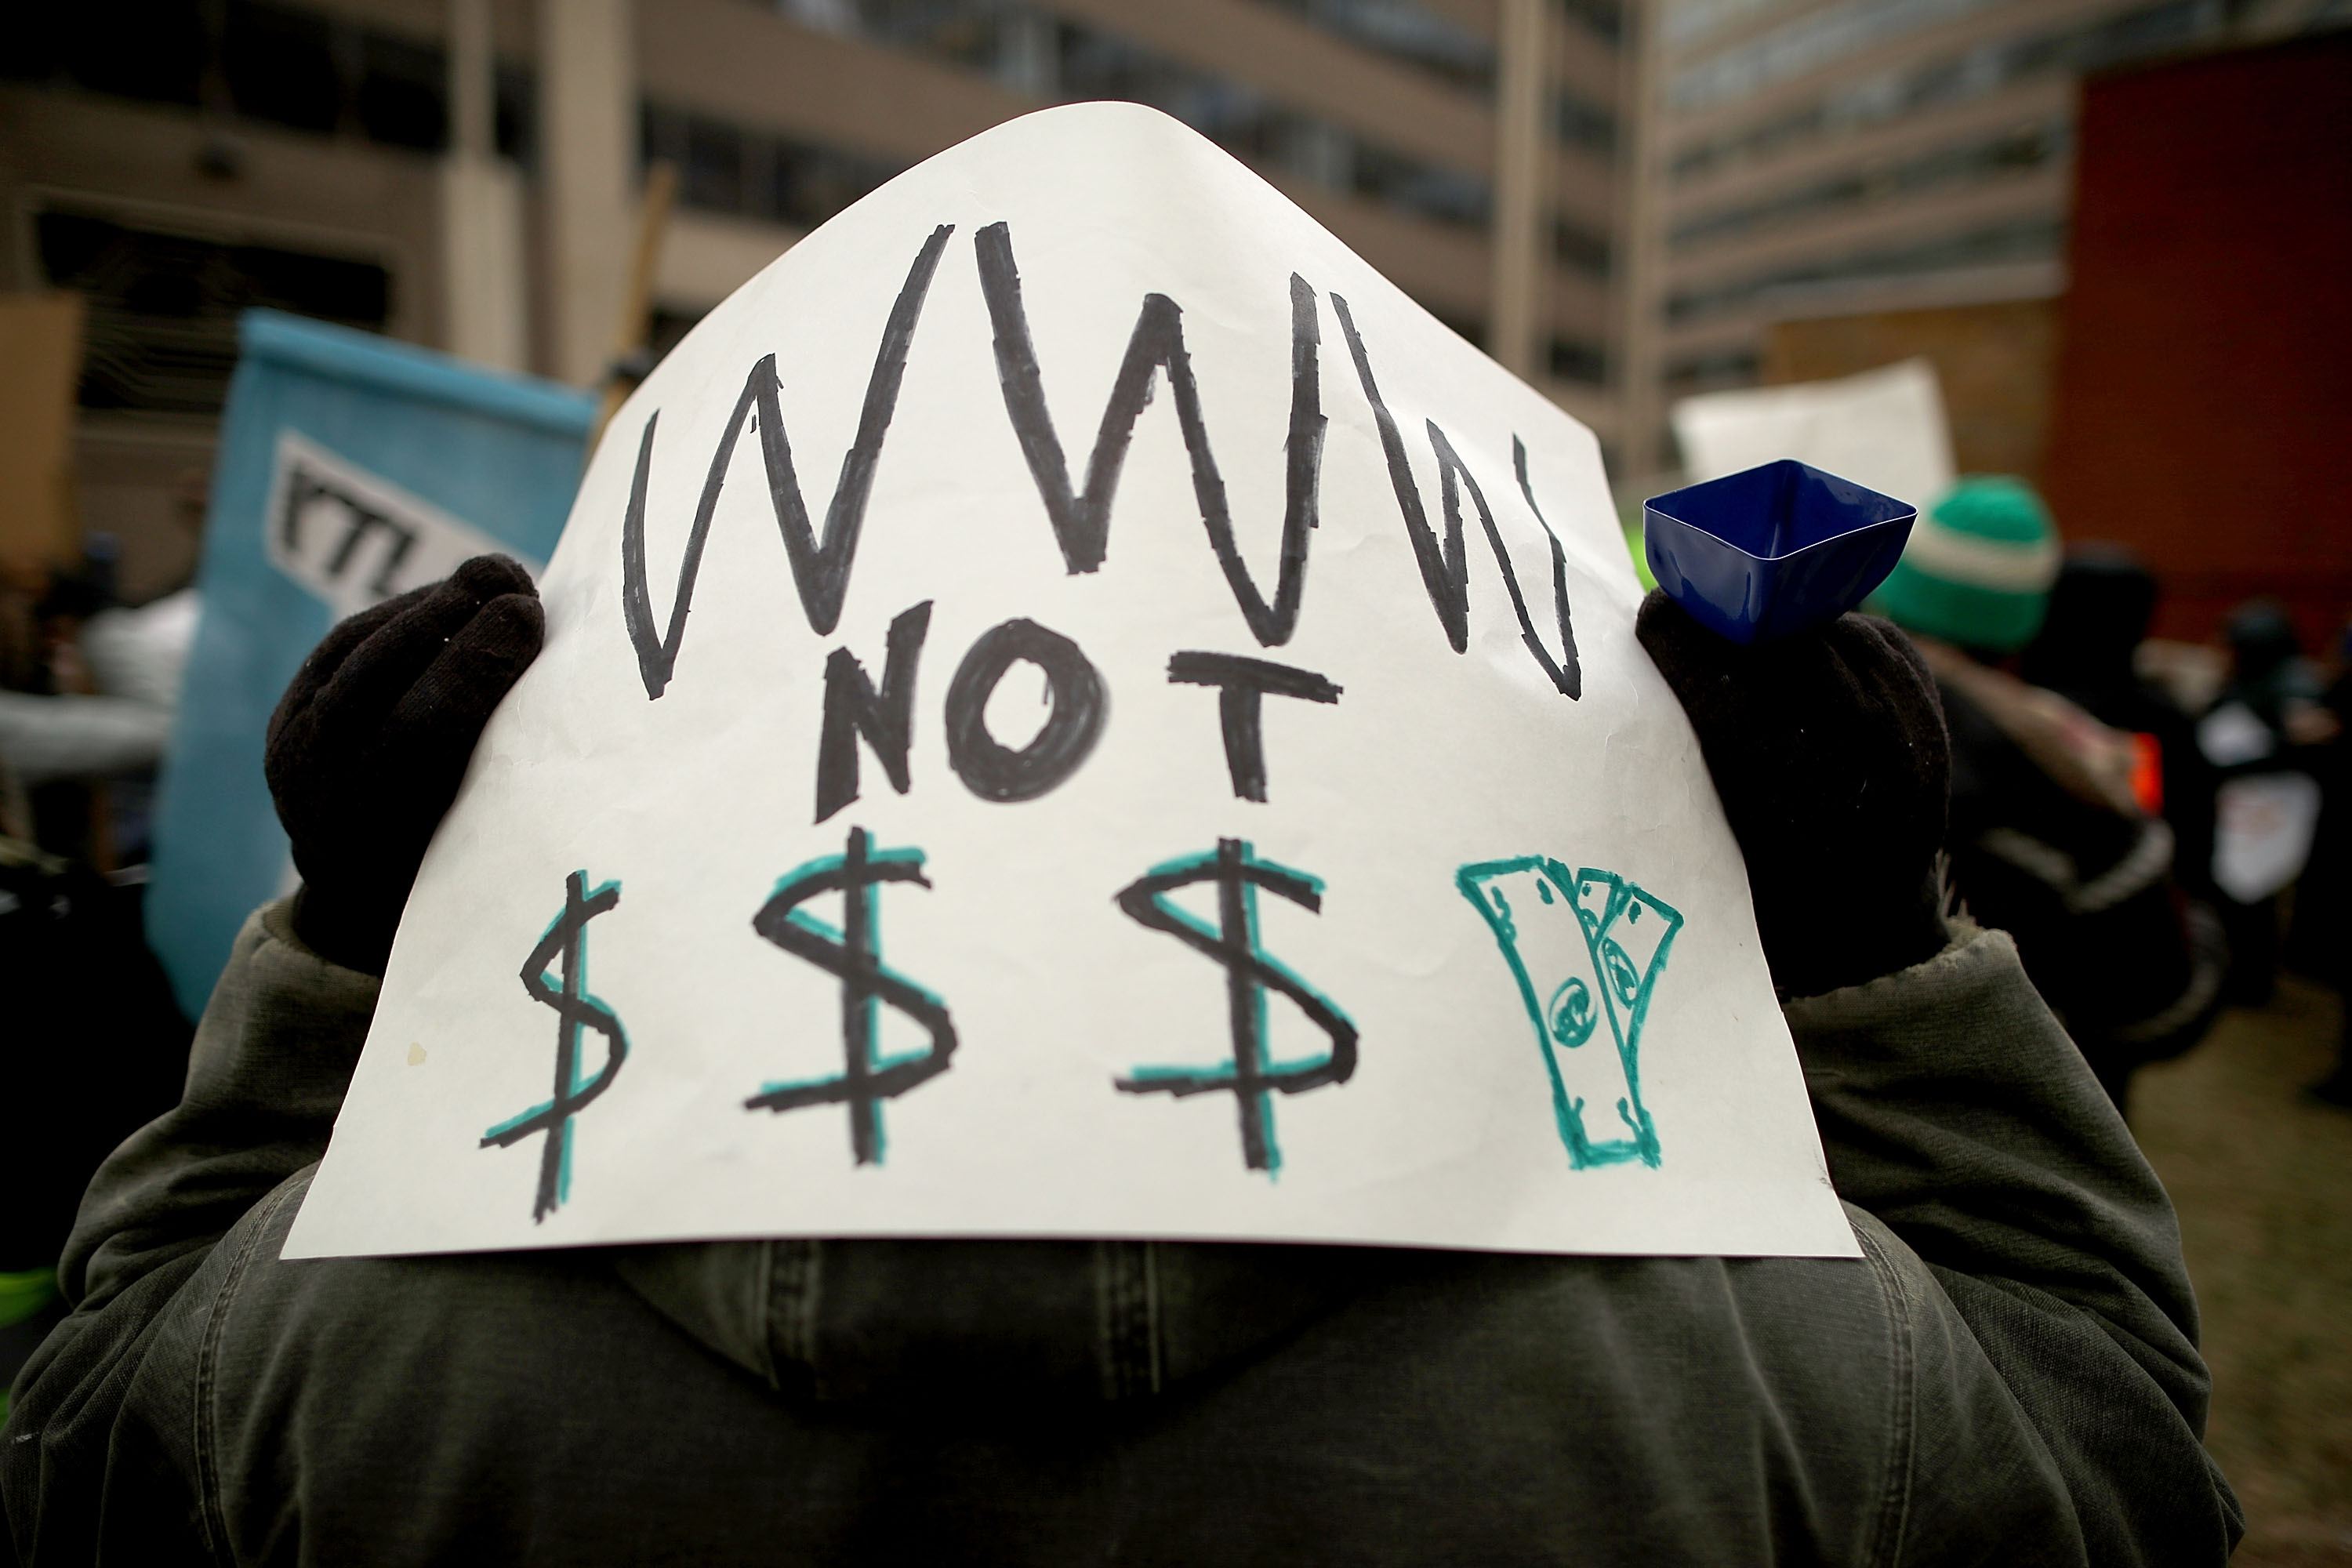 Twitter users are losing it over the net neutrality ruling, and OF COURSE THEY ARE